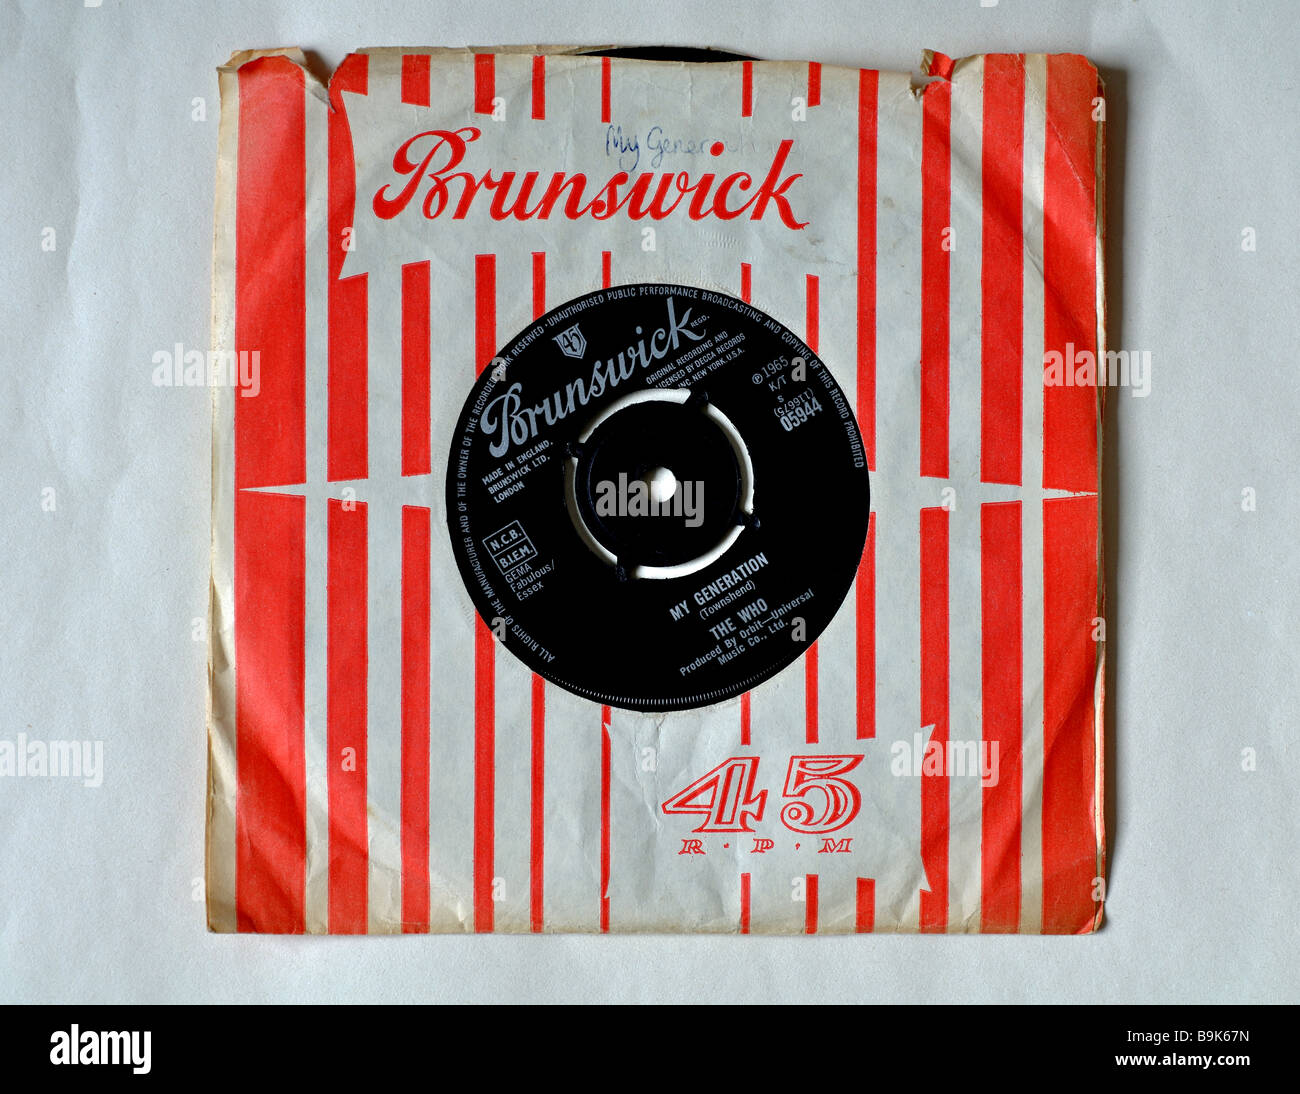 Vinyl record, 'My Generation' by The Who - Stock Image